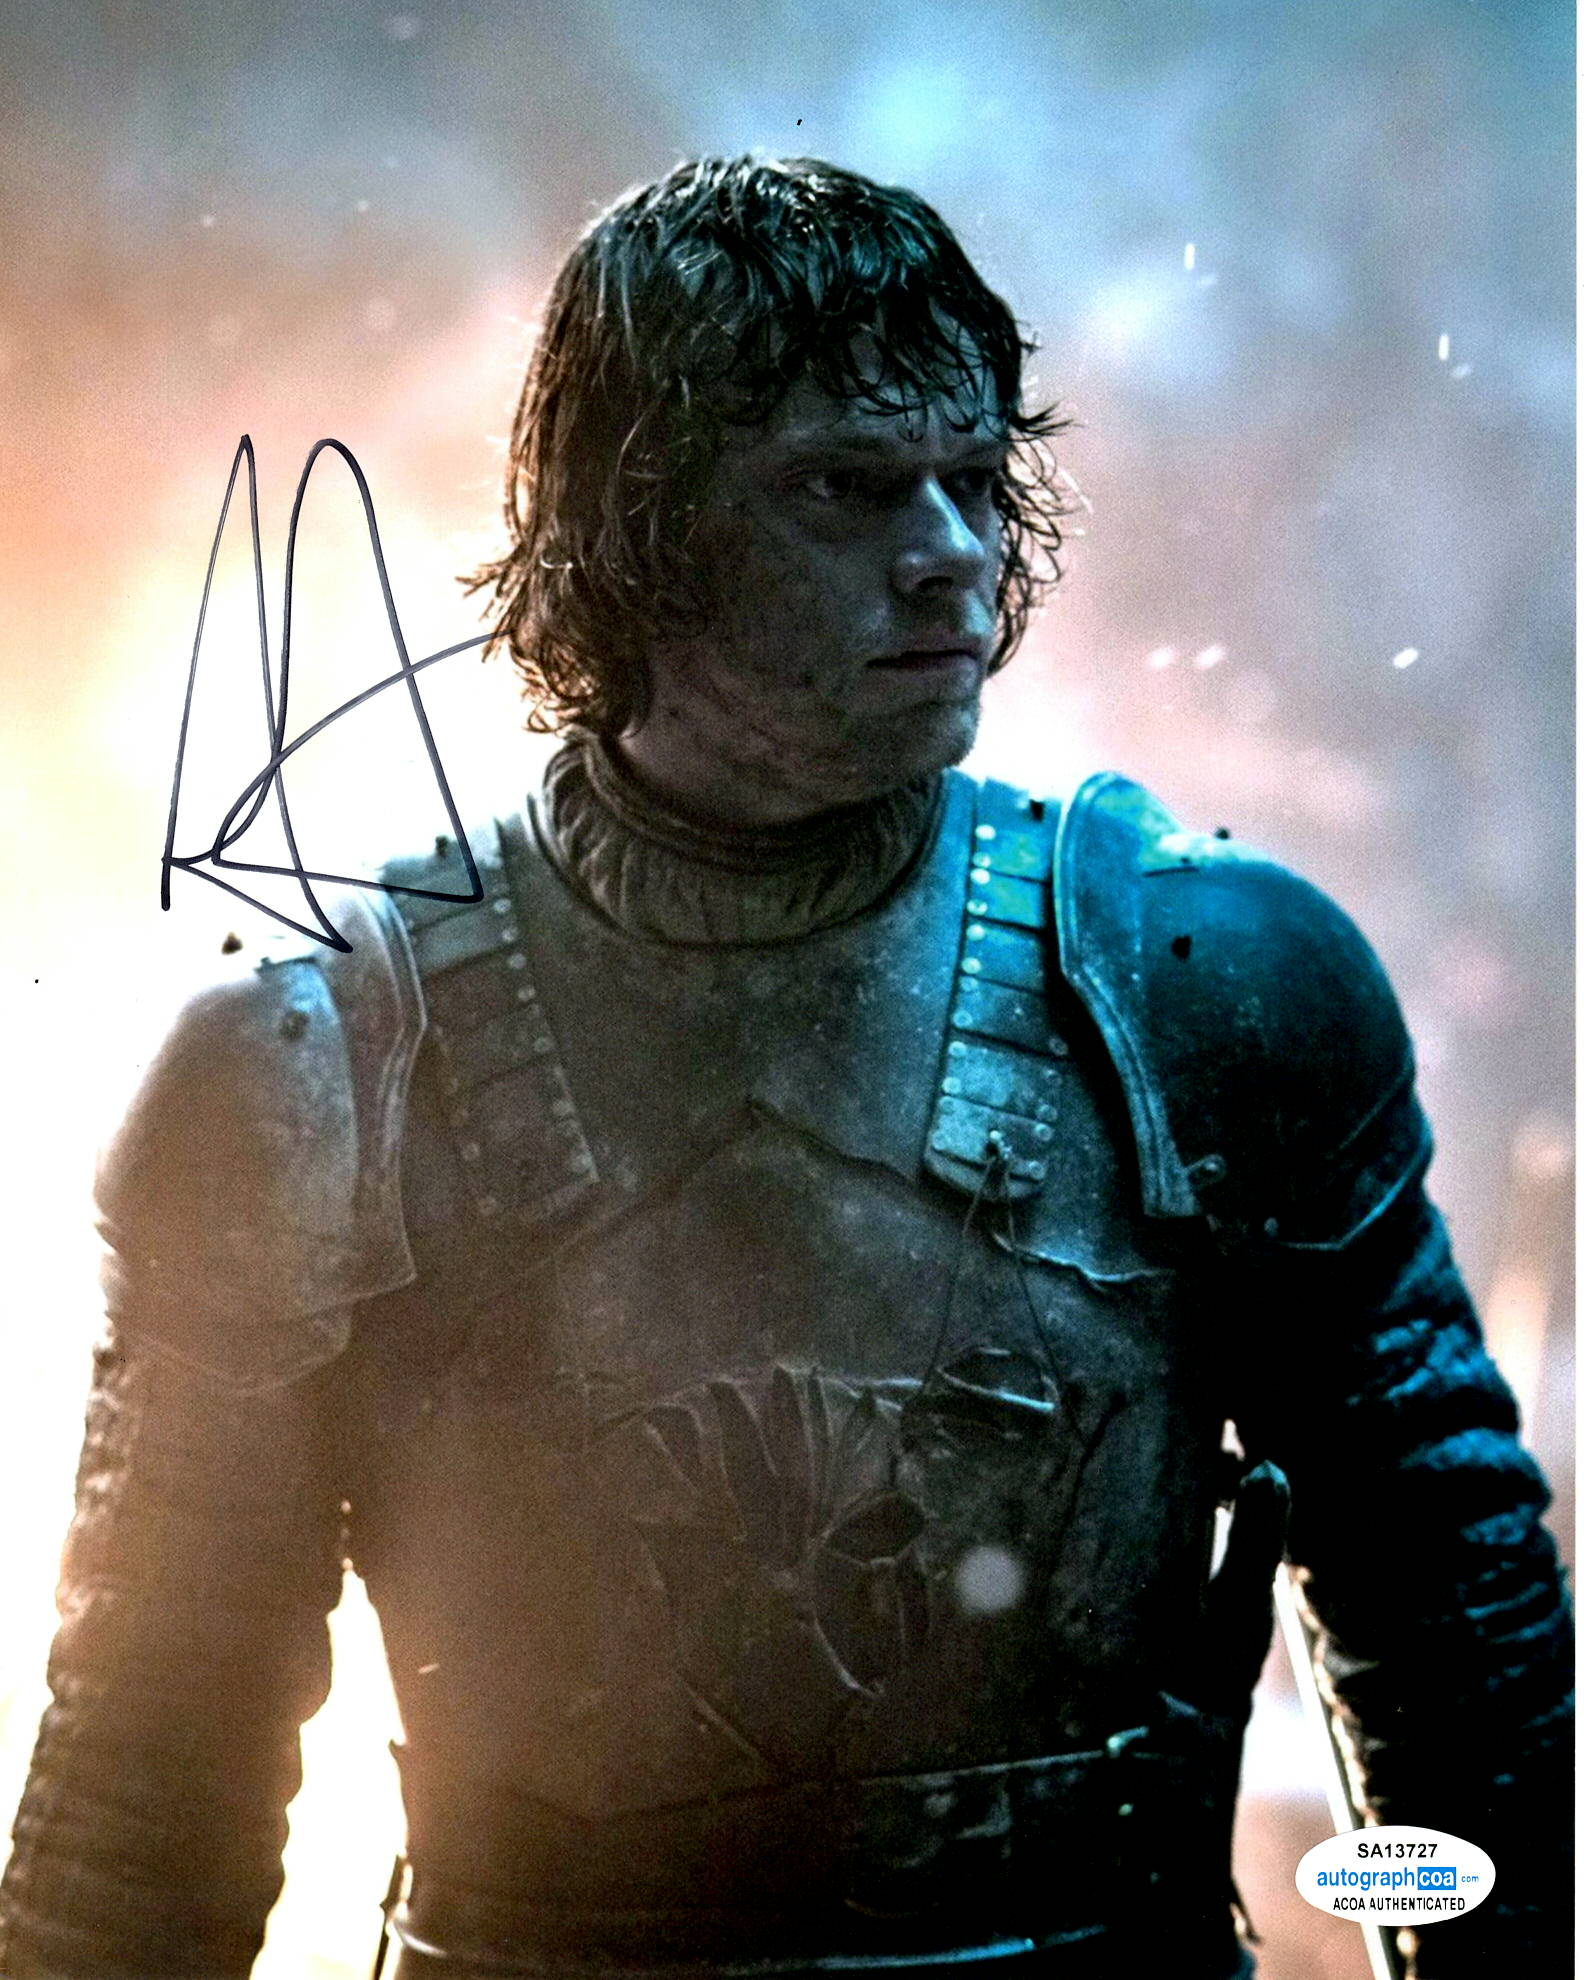 Alfie Allen Game of Thrones Signed Autograph 8x10 Photo #2 - Outlaw Hobbies Authentic Autographs